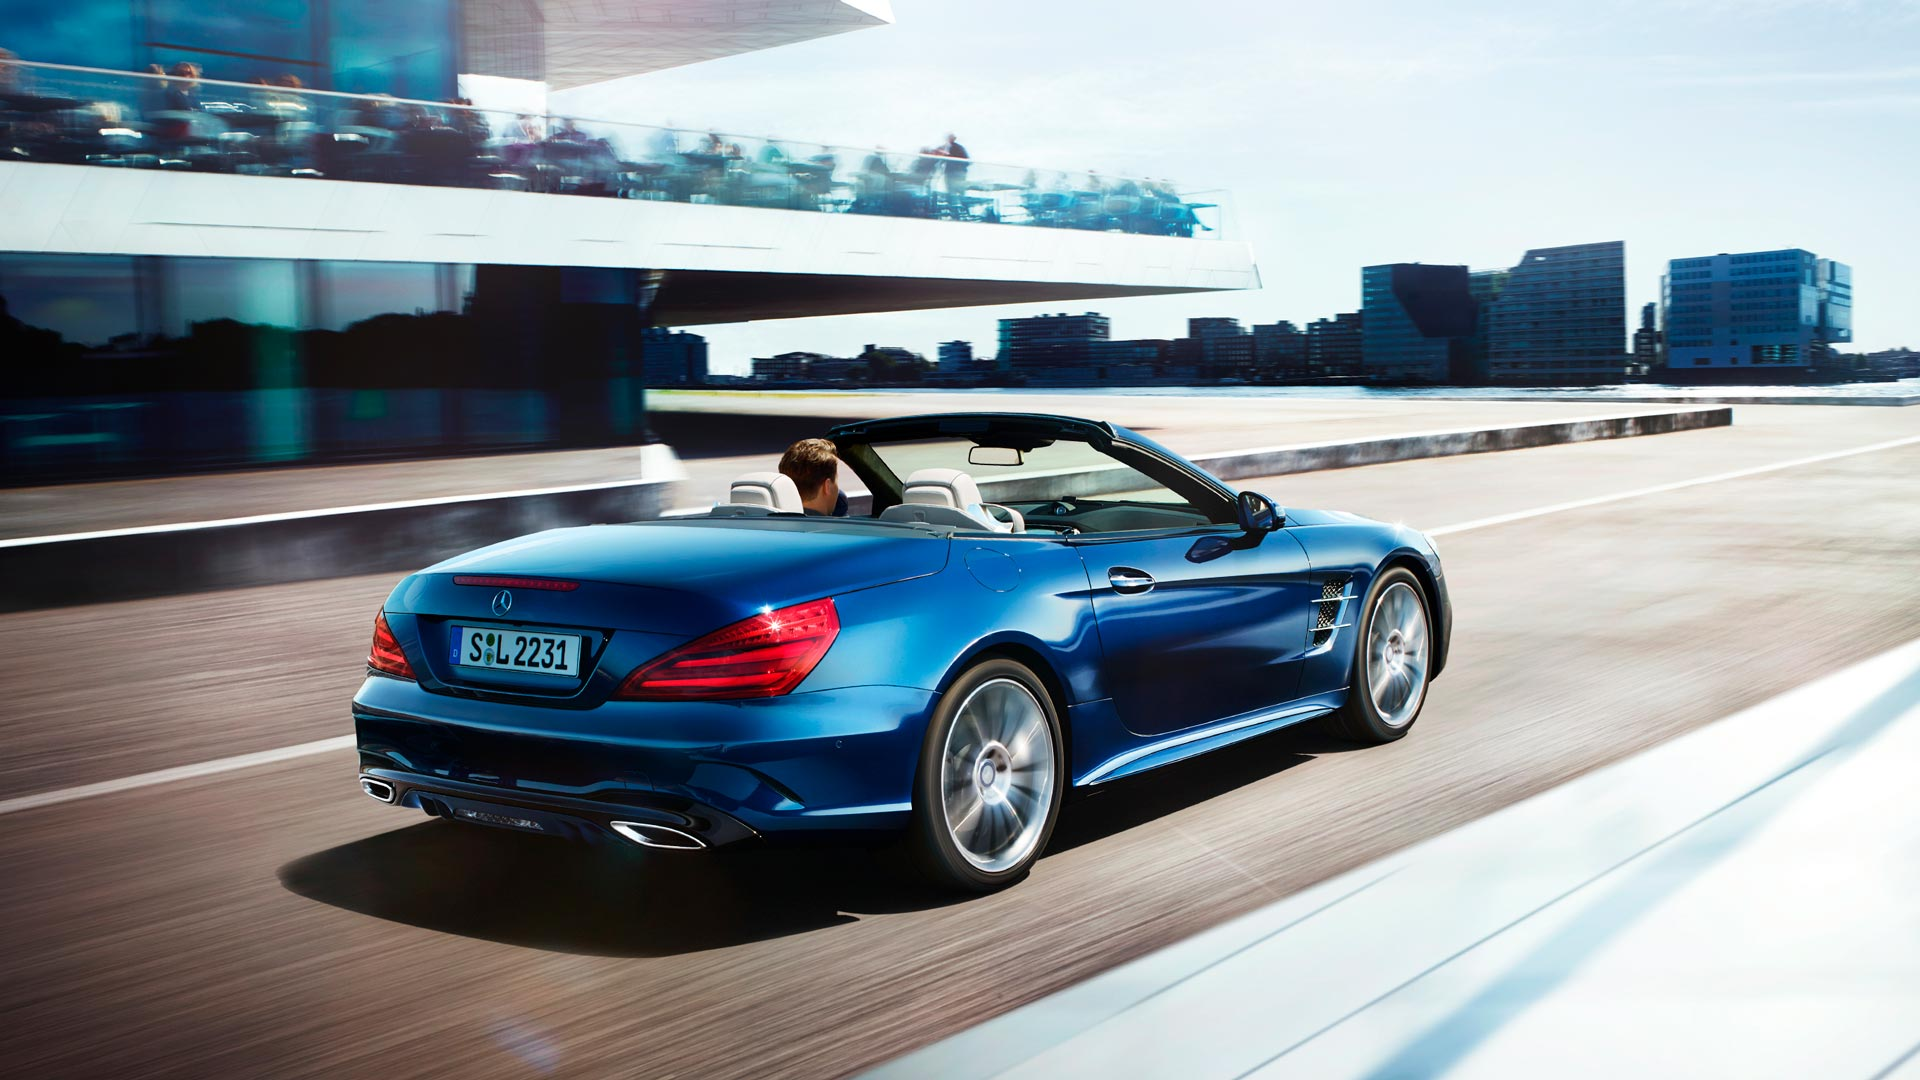 Новий автомобіль Mercedes-Benz SL Roadster задні фари